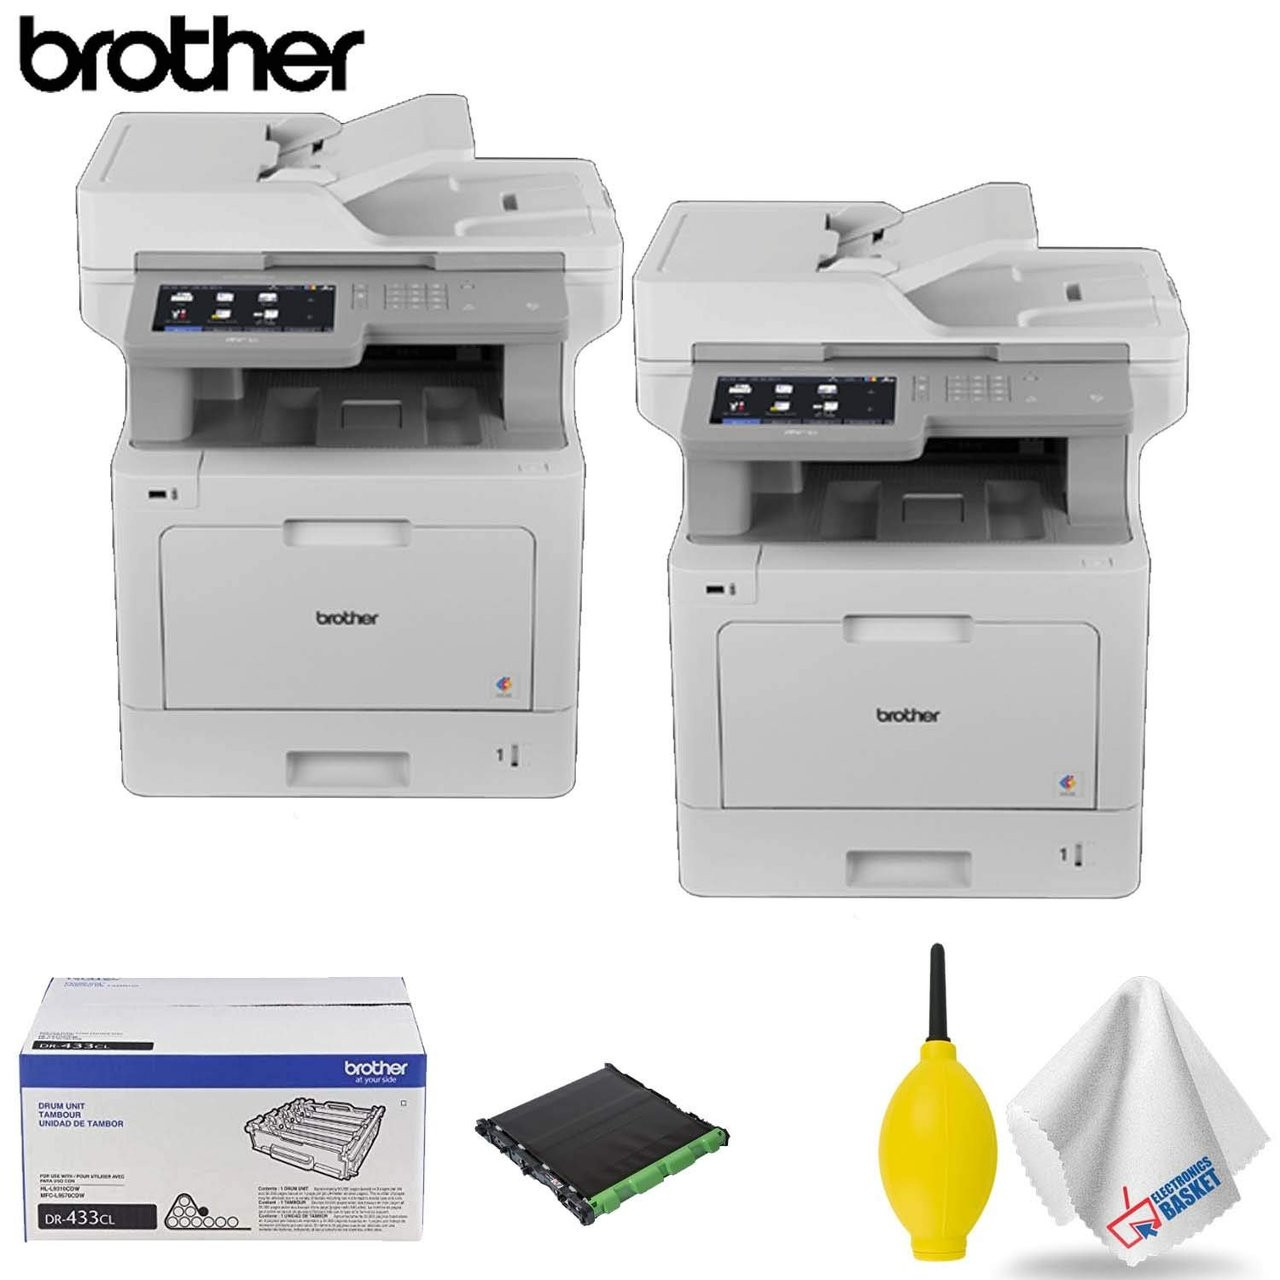 Brother MFC-L9570CDW Color All-in-One Laser Printer Professional Accessory  Kit